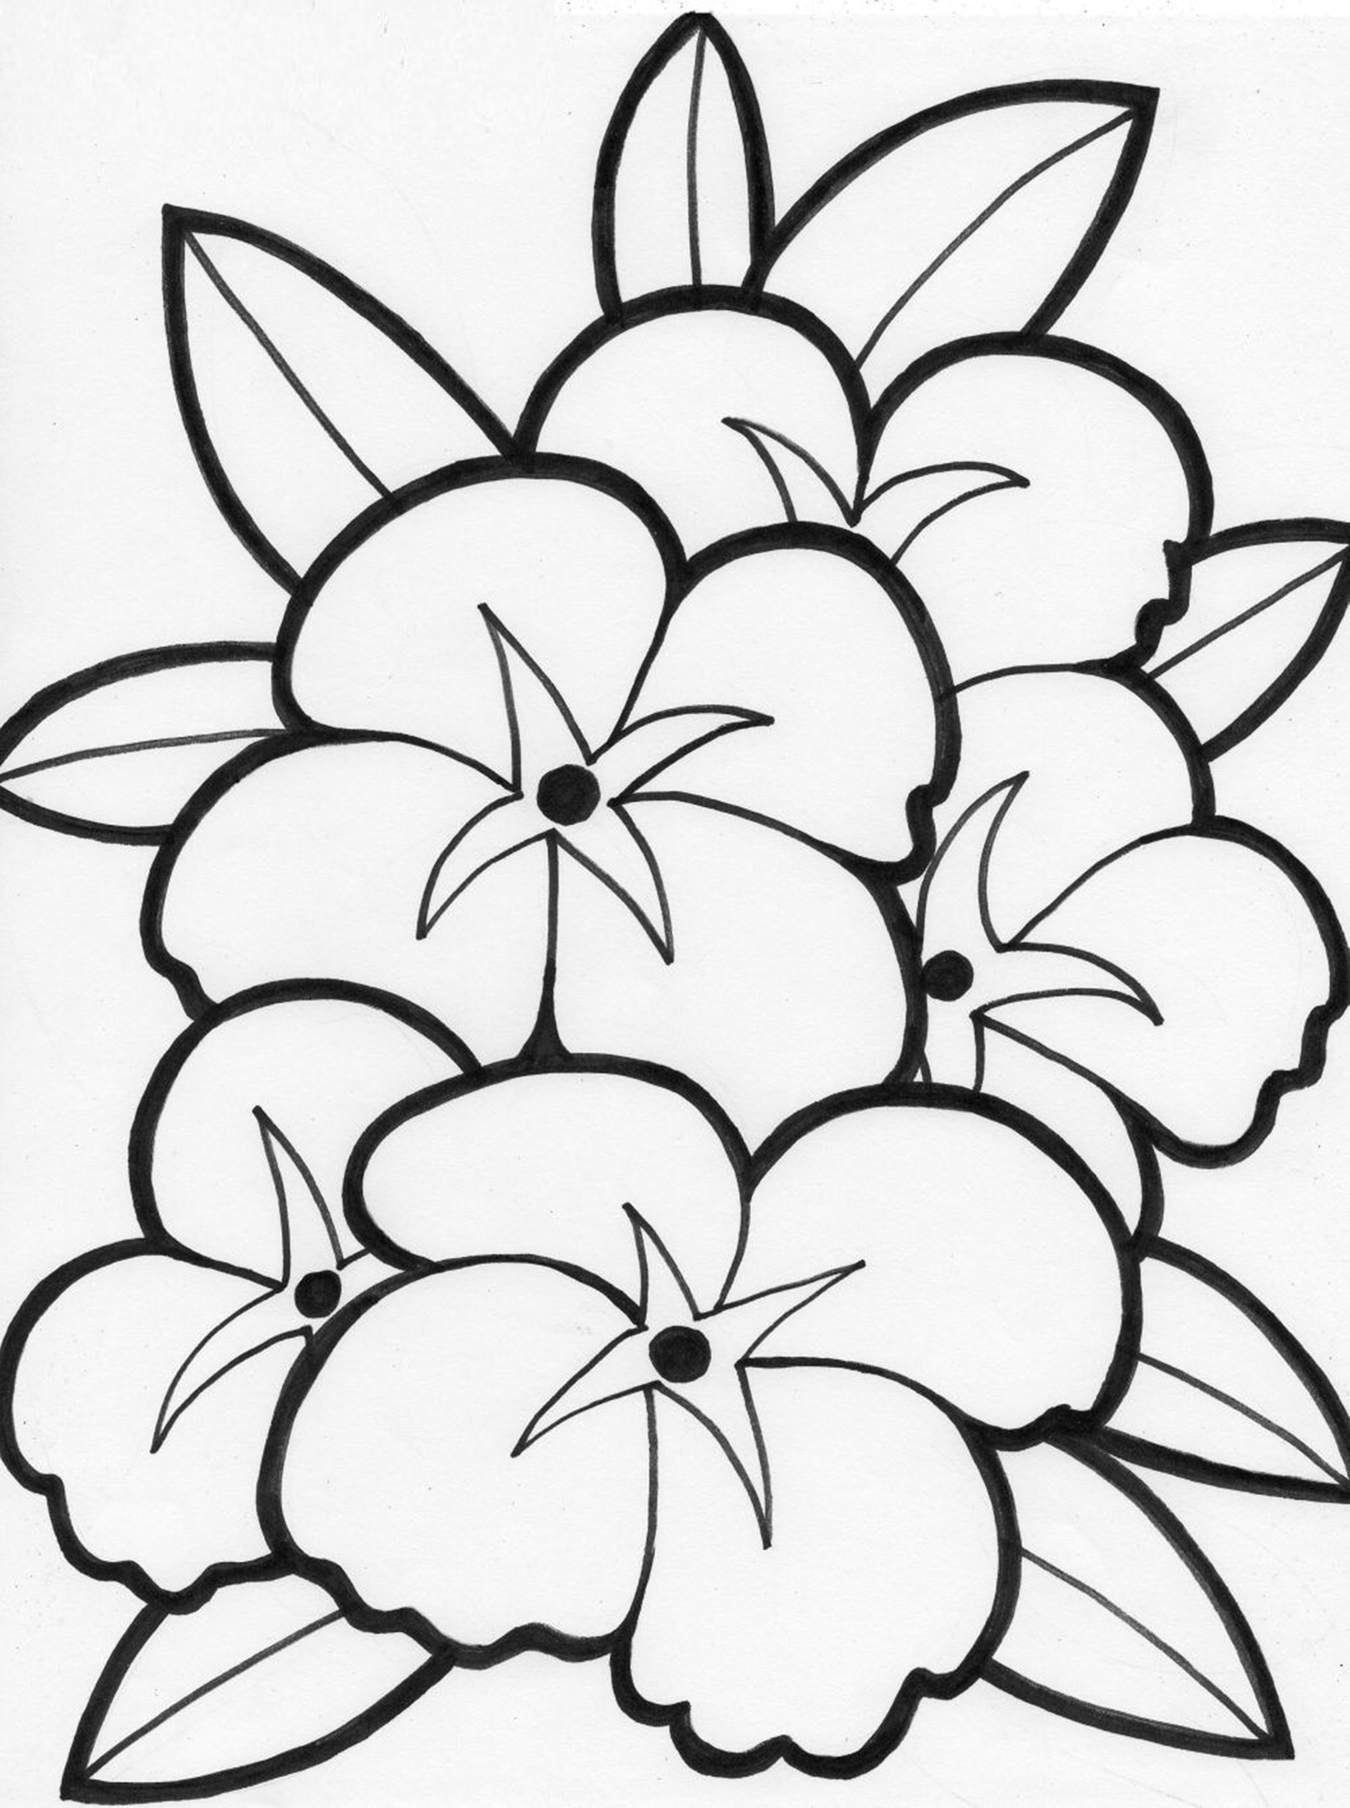 photograph regarding Flower Coloring Pages Printable known as Absolutely free Printable Flower Coloring Internet pages For Small children - Simplest